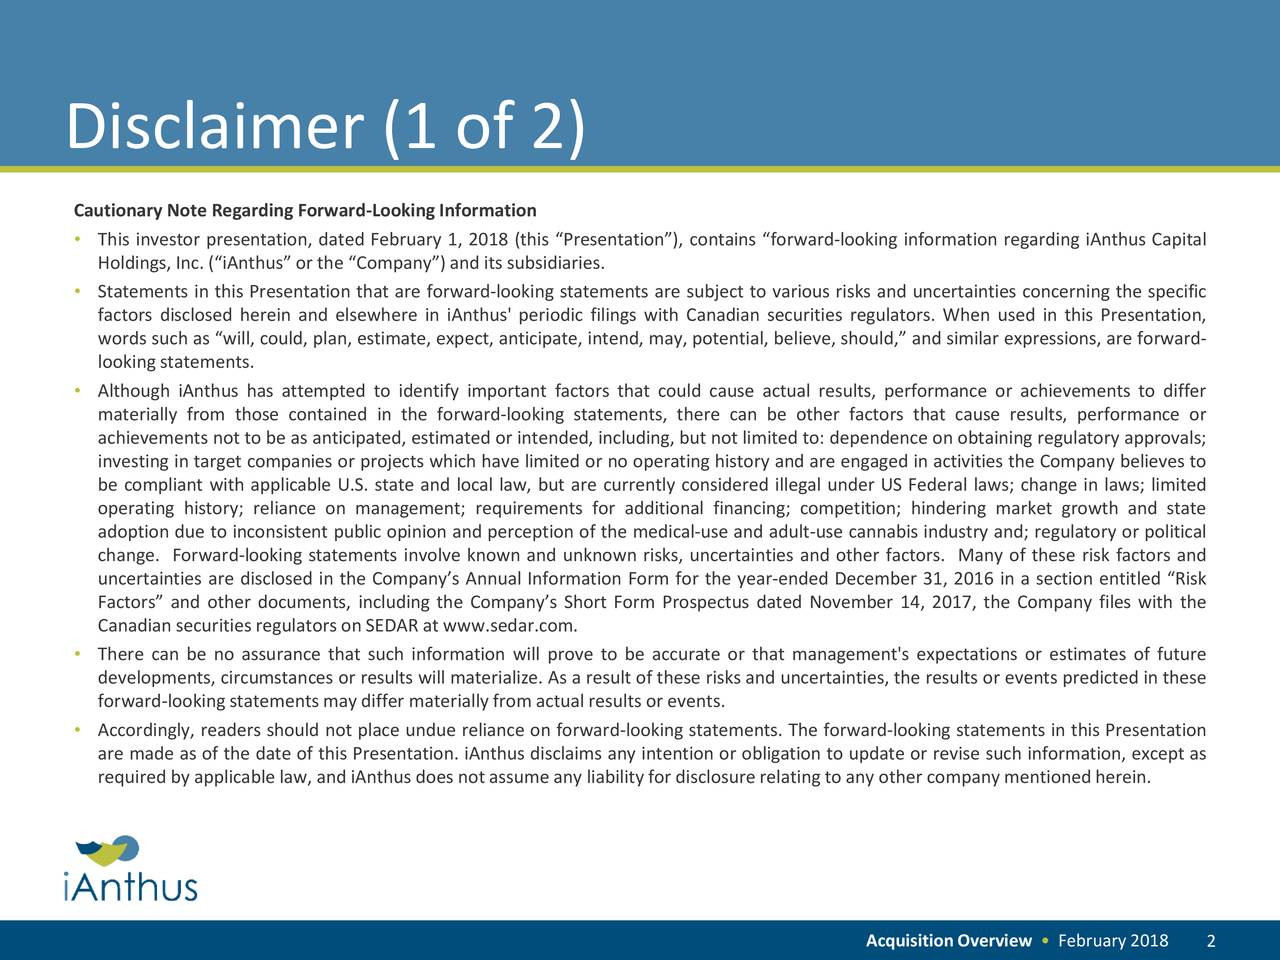 """Cautionary Note Regarding Forward-LookingInformation • This investor presentation, dated February 1, 2018 (this """"Presentation""""), contains """"forward-looking information regarding iAnthus Capital Holdings, Inc. (""""iAnthus"""" or the """"Company"""") and its subsidiaries. • Statements in this Presentation that are forward-looking statements are subject to various risks and uncertainties concerning the specific factors disclosed herein and elsewhere in iAnthus' periodic filings with Canadian securities regulators. When used in this Presentation, words such as """"will, could, plan, estimate, expect, anticipate, intend, may, potential, believe, should,"""" and similar expressions, are forward- lookingstatements. • Although iAnthus has attempted to identify important factors that could cause actual results, performance or achievements to differ materially from those contained in the forward-looking statements, there can be other factors that cause results, performance or achievements not to be as anticipated, estimated or intended, including, but not limited to: dependence on obtaining regulatory approvals; investing in target companies or projects which have limited or no operating history and are engaged in activities the Company believes to be compliant with applicable U.S. state and local law, but are currently considered illegal under US Federal laws; change in laws; limited operating history; reliance on management; requirements for additional financing; competition; hindering market growth and state adoption due to inconsistent public opinion and perception of the medical-use and adult-use cannabis industry and; regulatory or political change. Forward-looking statements involve known and unknown risks, uncertainties and other factors. Many of these risk factors and uncertainties are disclosed in the Company's Annual Information Form for the year-ended December 31, 2016 in a section entitled """"Risk Factors"""" and other documents, including the Company's Short Form Prospectus dated Nove"""